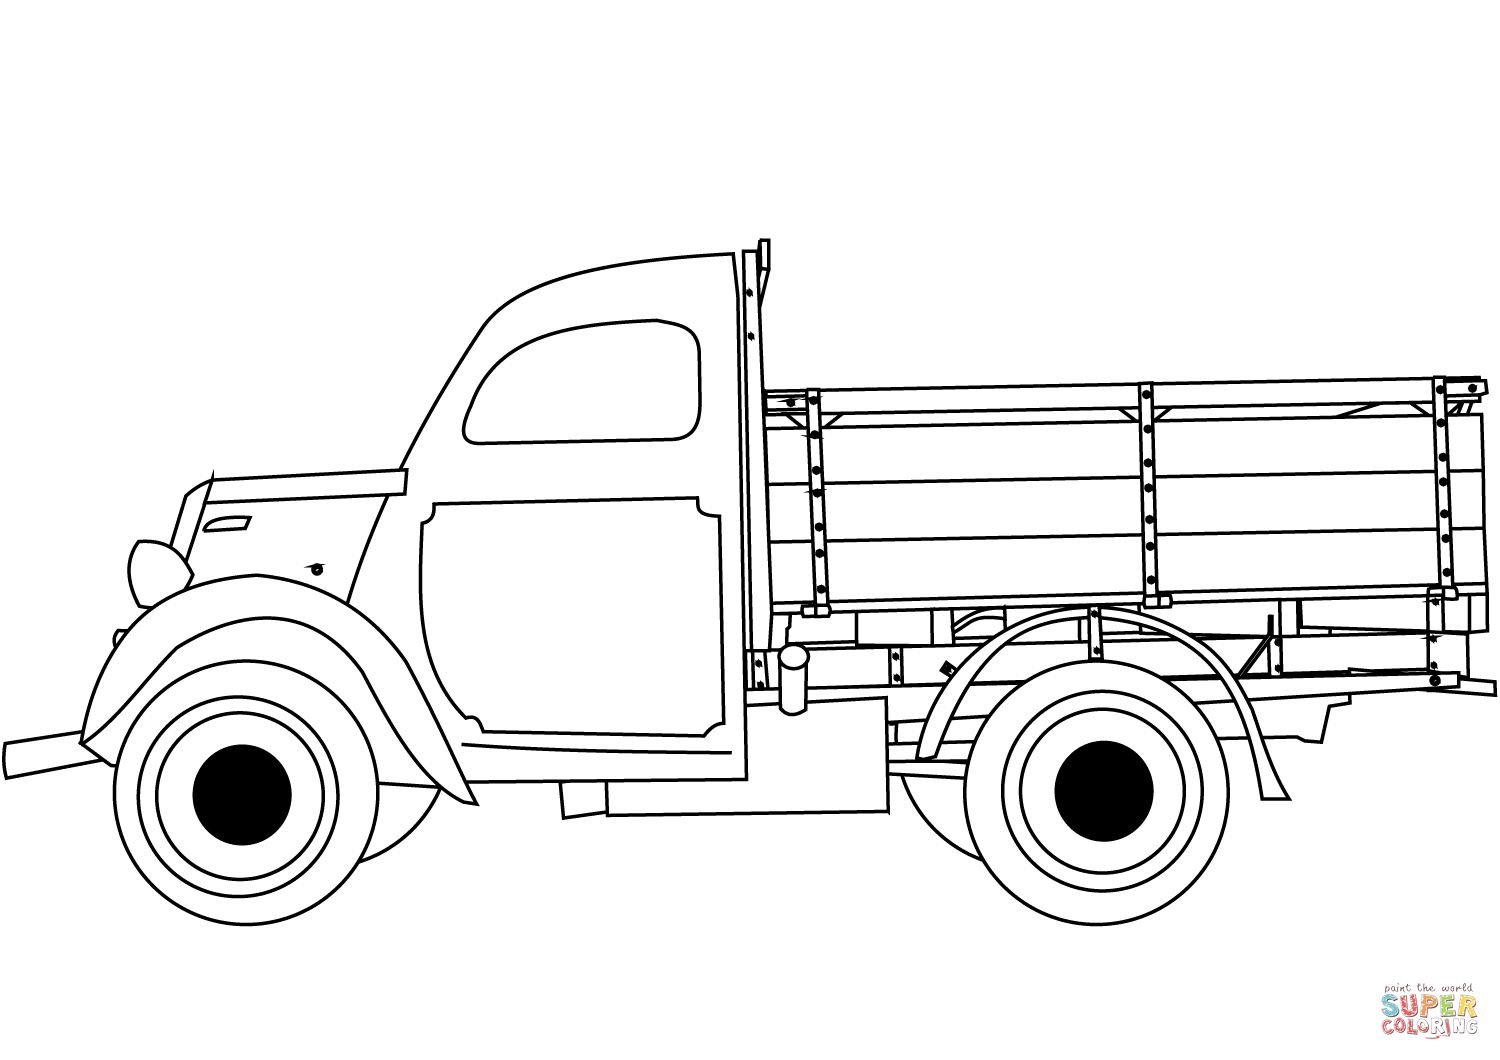 truck coloring games free printable monster truck coloring pages for kids coloring truck games